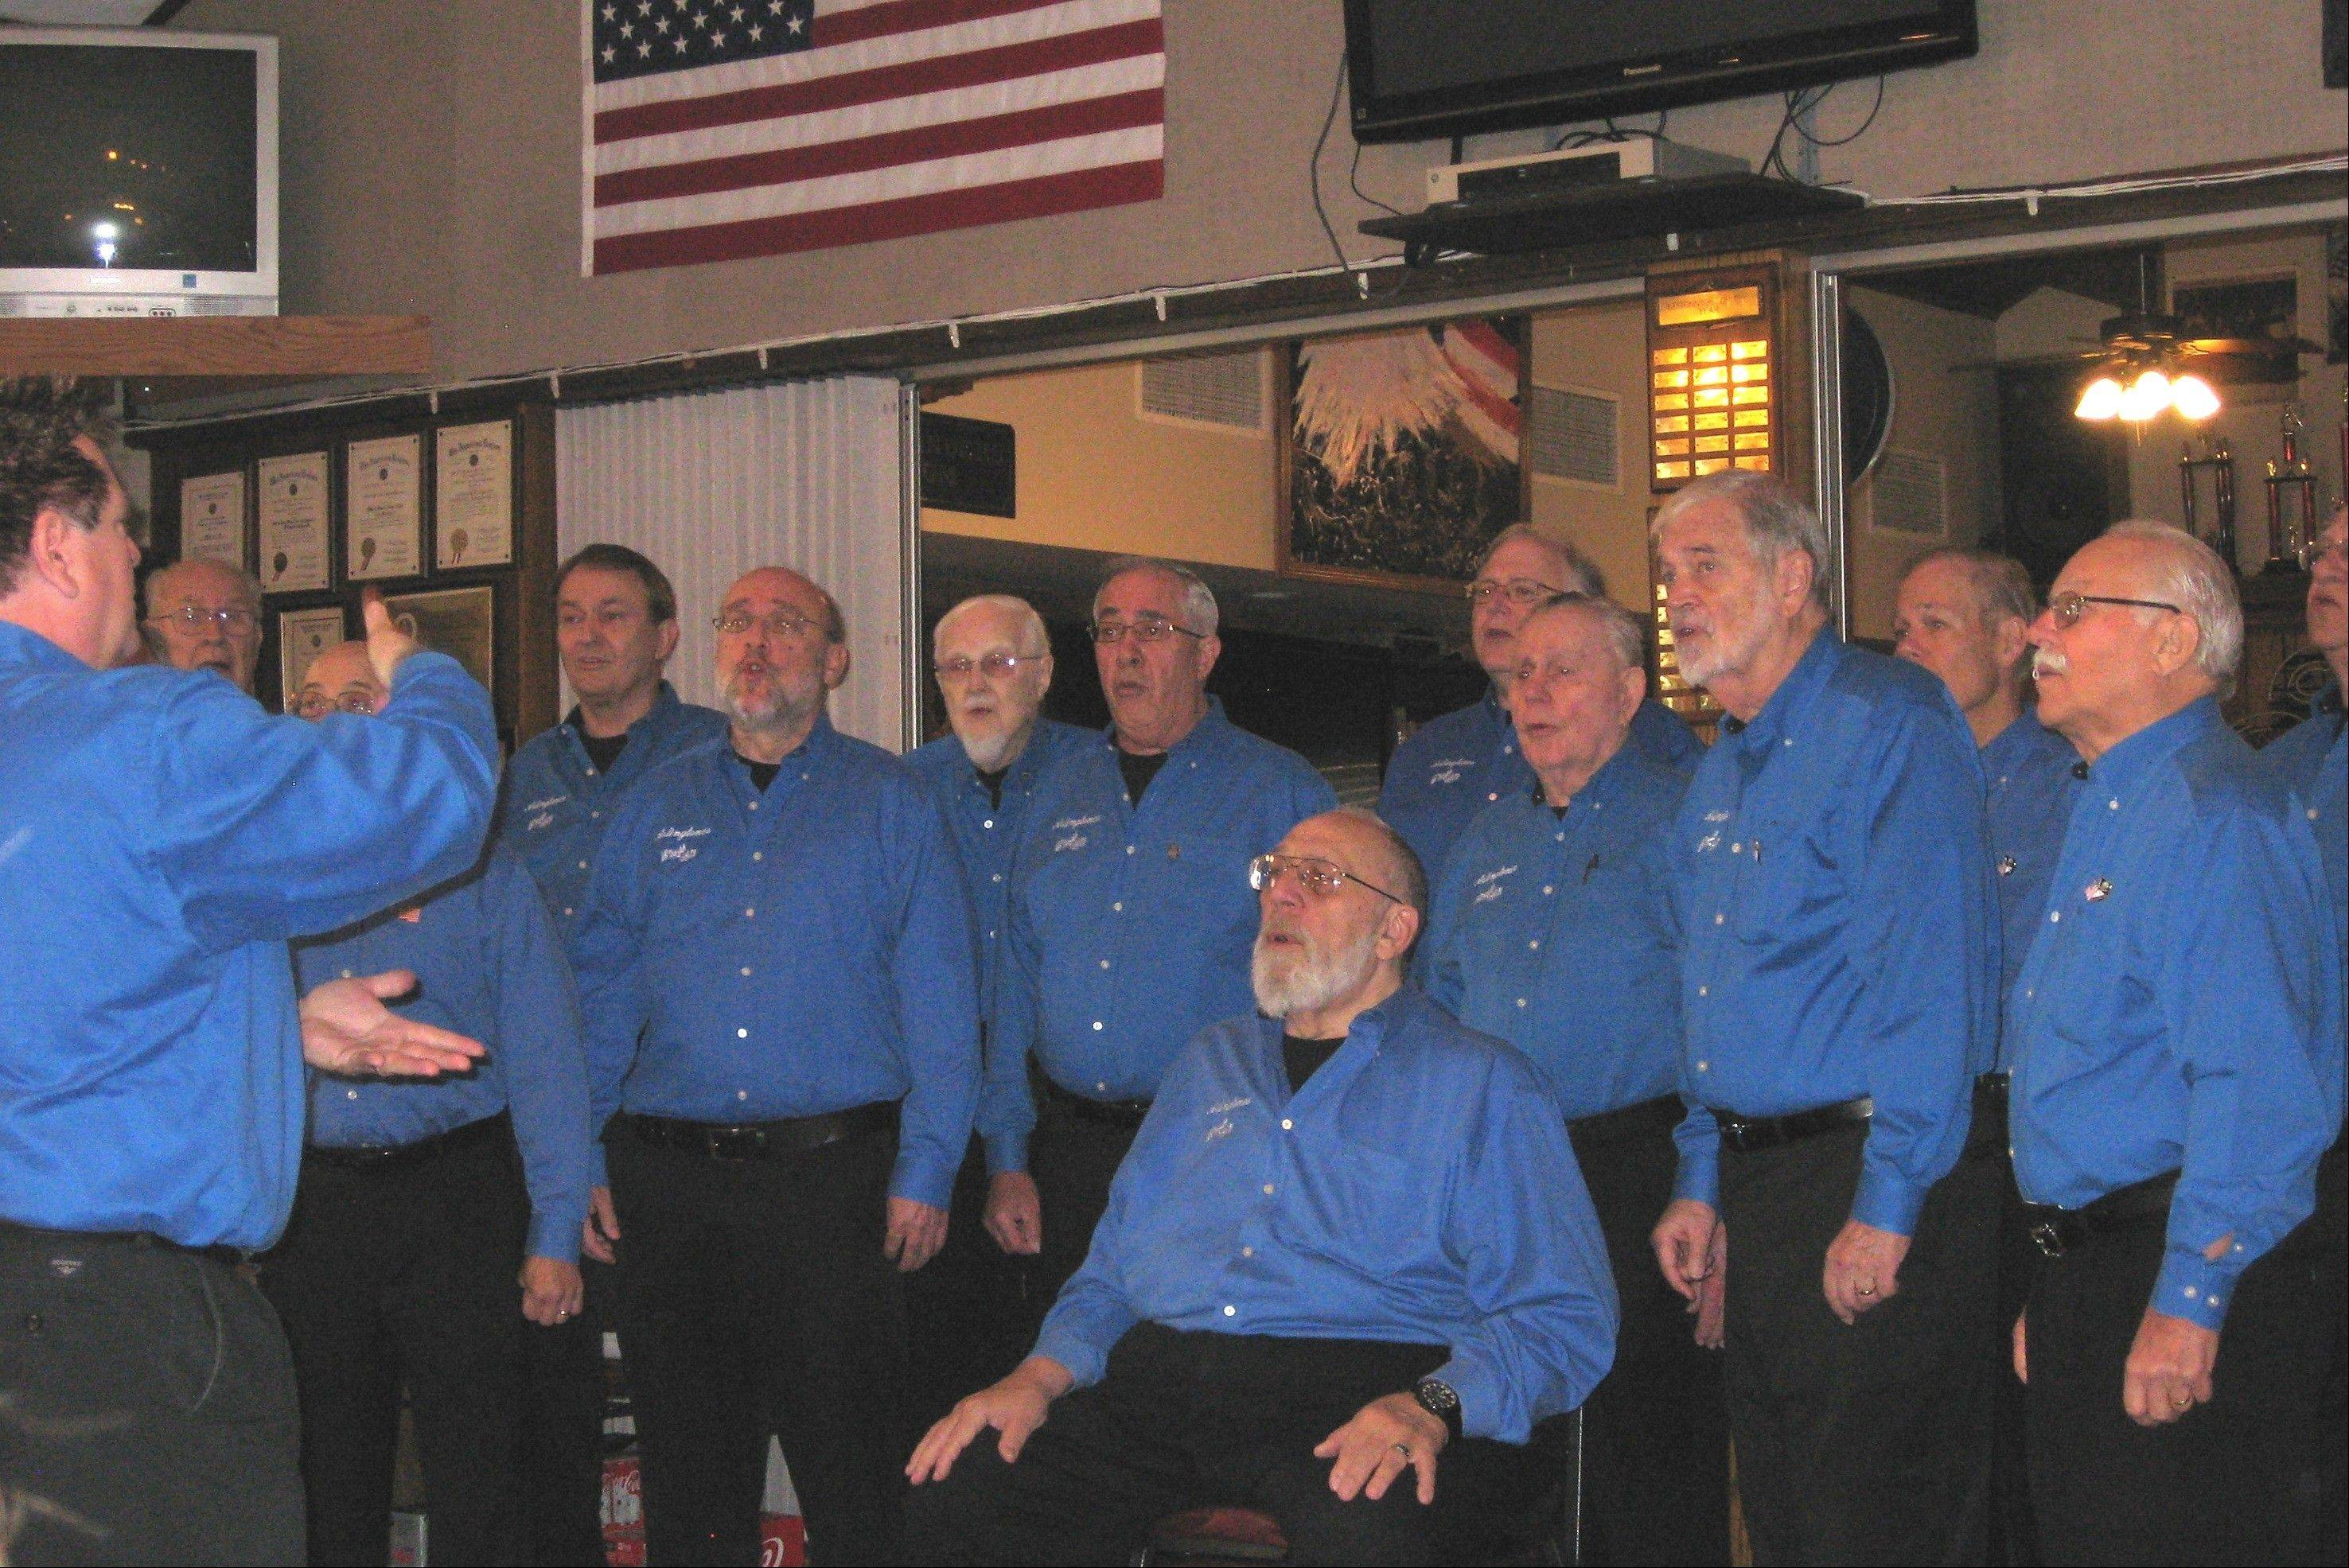 The Arlingtones entertain Naval recruits at the American Legion Post 208 on Thanksgiving.